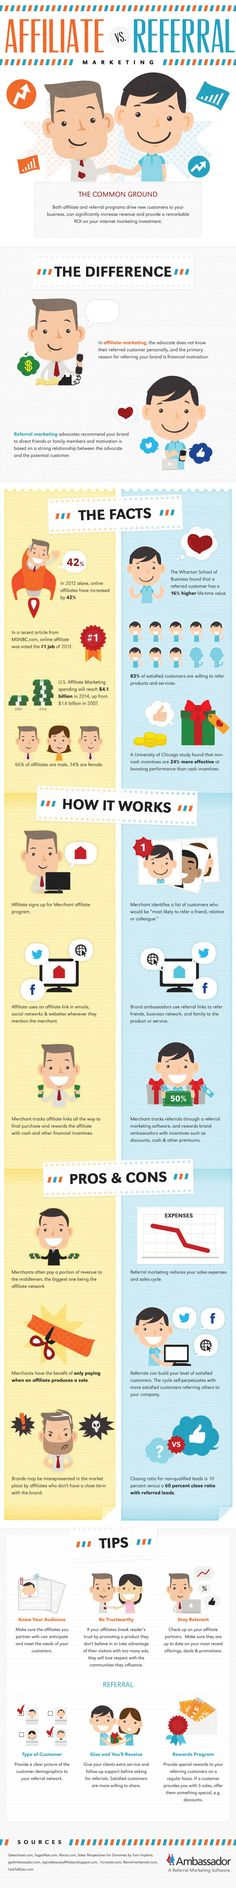 #INFOgraphic > Affiliate or Referral Marketing: Both affiliate and referral programs are effective advertising channels that bring new customers to online businesses and rewards to referrers. Which one a marketer chooses depends on the market he refers, the sales goals he sets, the advertising budget and the level of customer loyalty he... > http://infographicsmania.com/affiliate-or-referral-marketing/